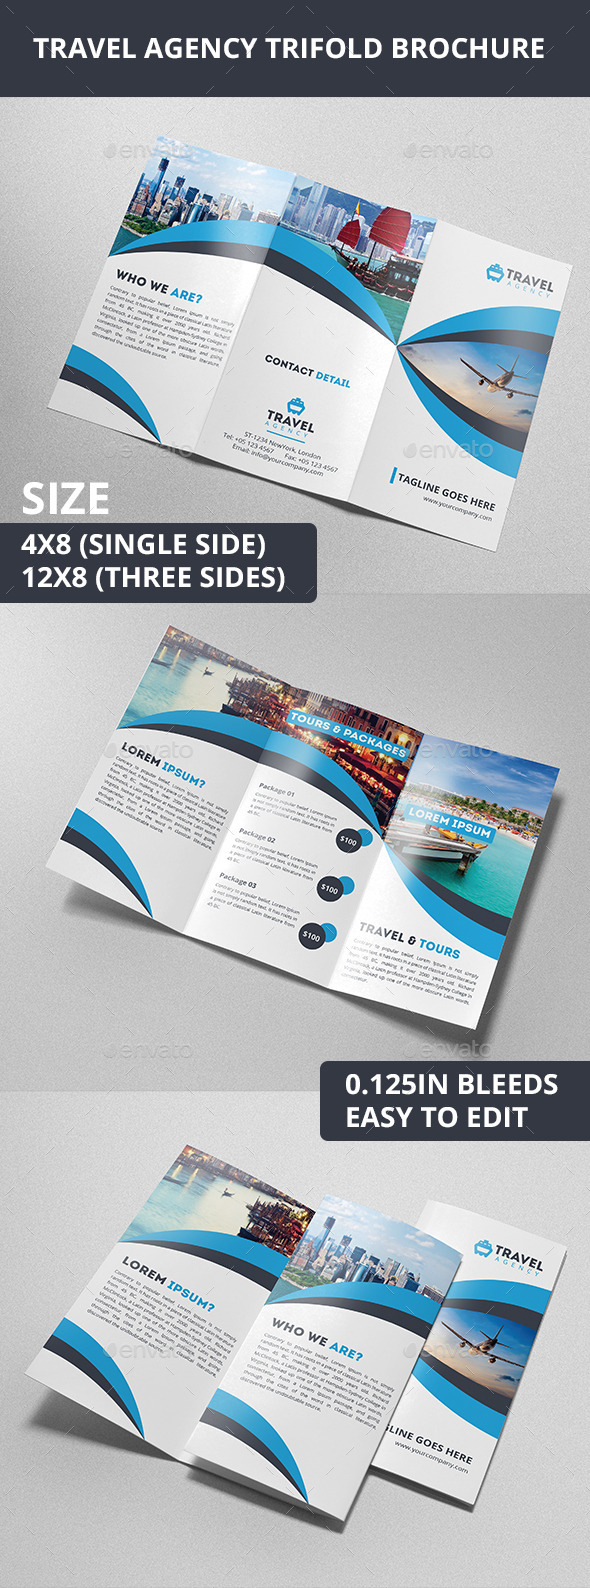 GraphicRiver Travel Agency Trifold Brochure 10338029